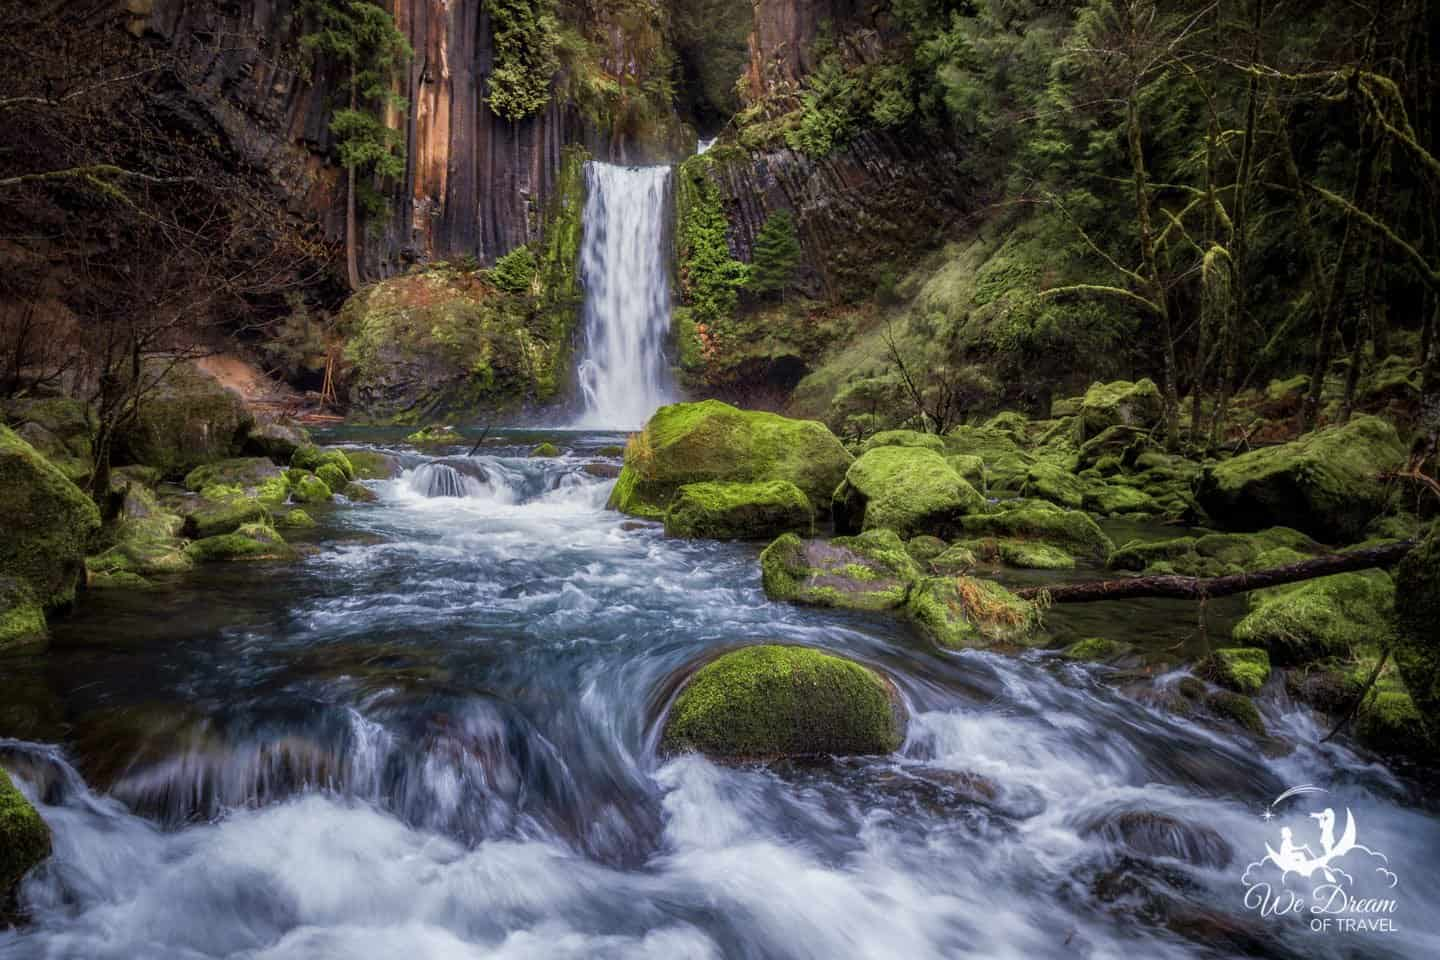 Landscape photographers consider Toketee Falls one of the best places to visit in Oregon